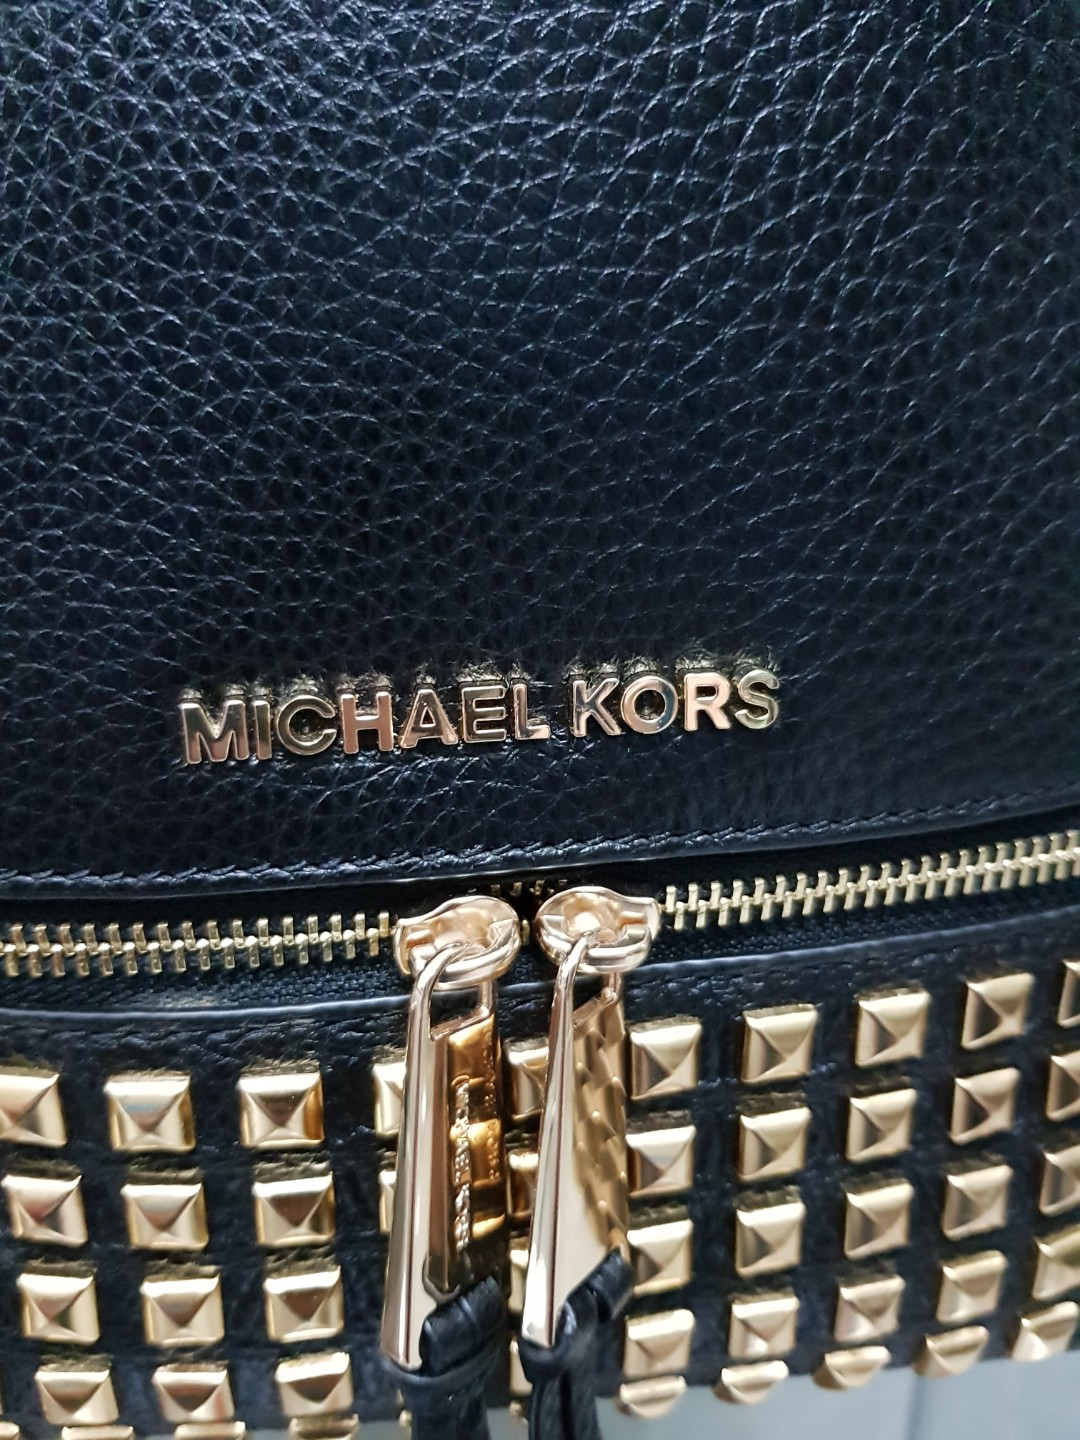 b040bf6e Reduced price $200 Nett. Like new Authentic Michael Kors Backpack, Luxury,  Bags & Wallets, Backpacks on Carousell